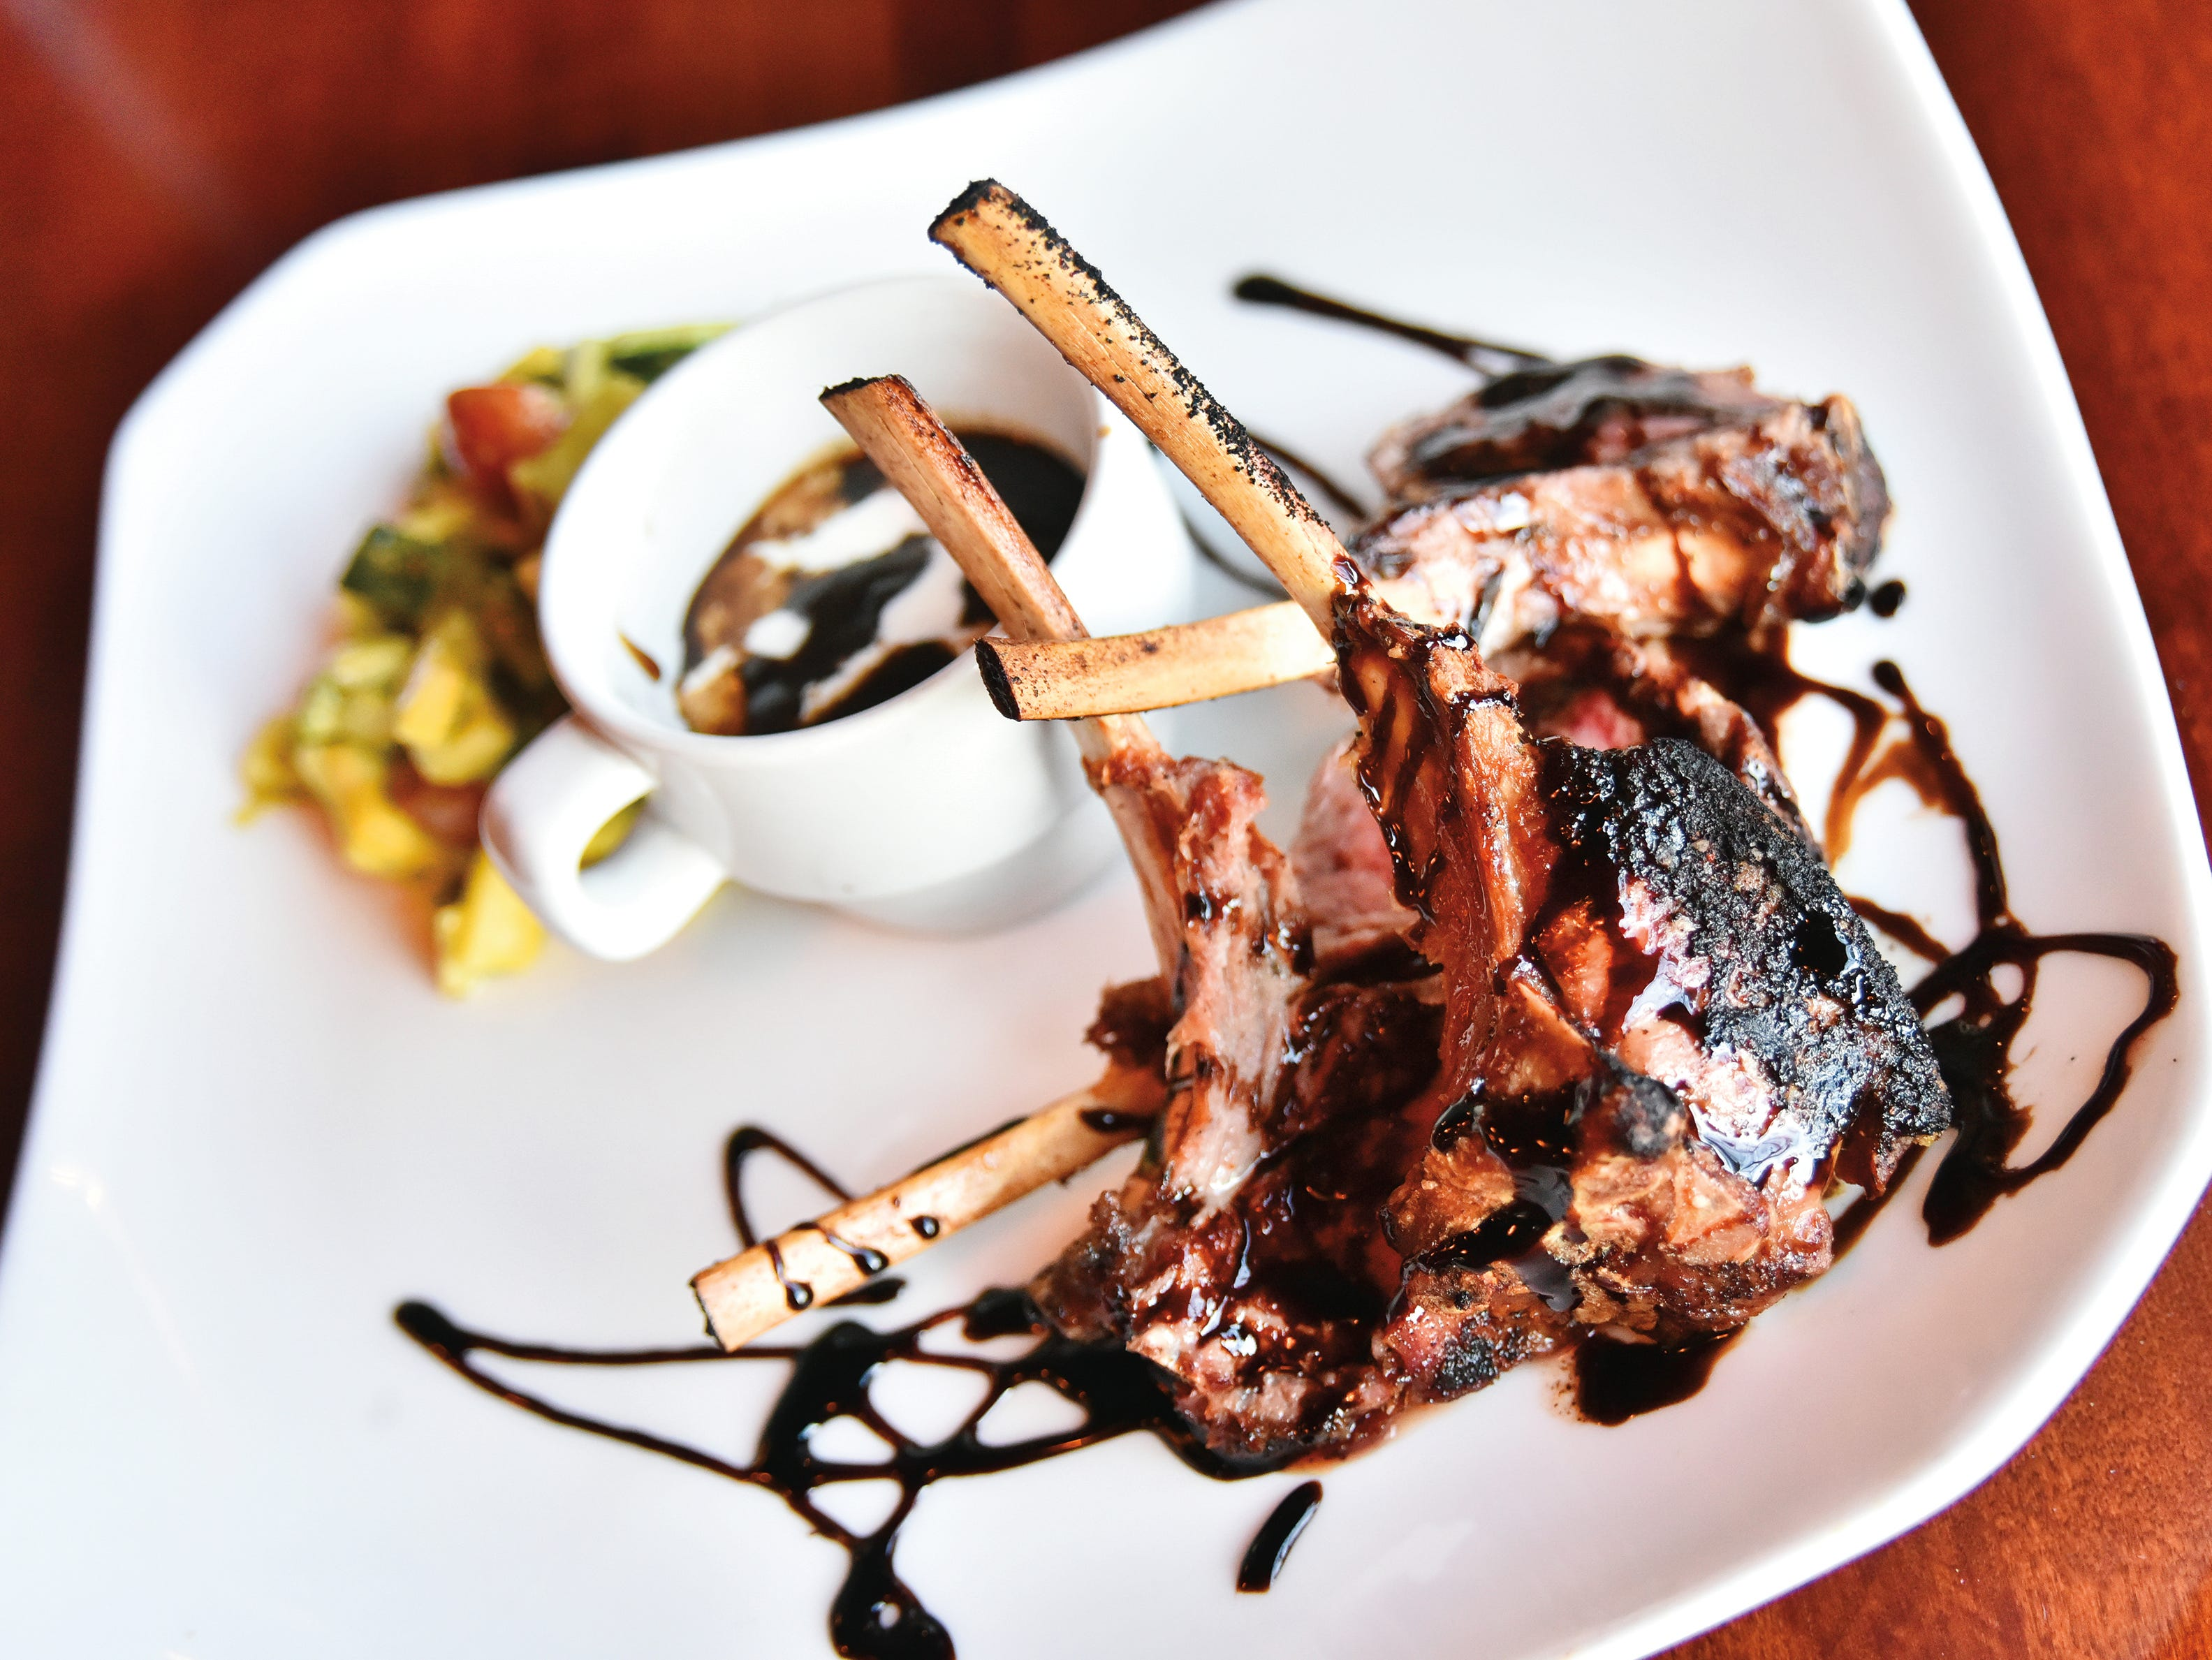 Lollipop lamb chops with an espresso rub, chili infused balsamic, and a side of vegetables in a mint vinaigrette